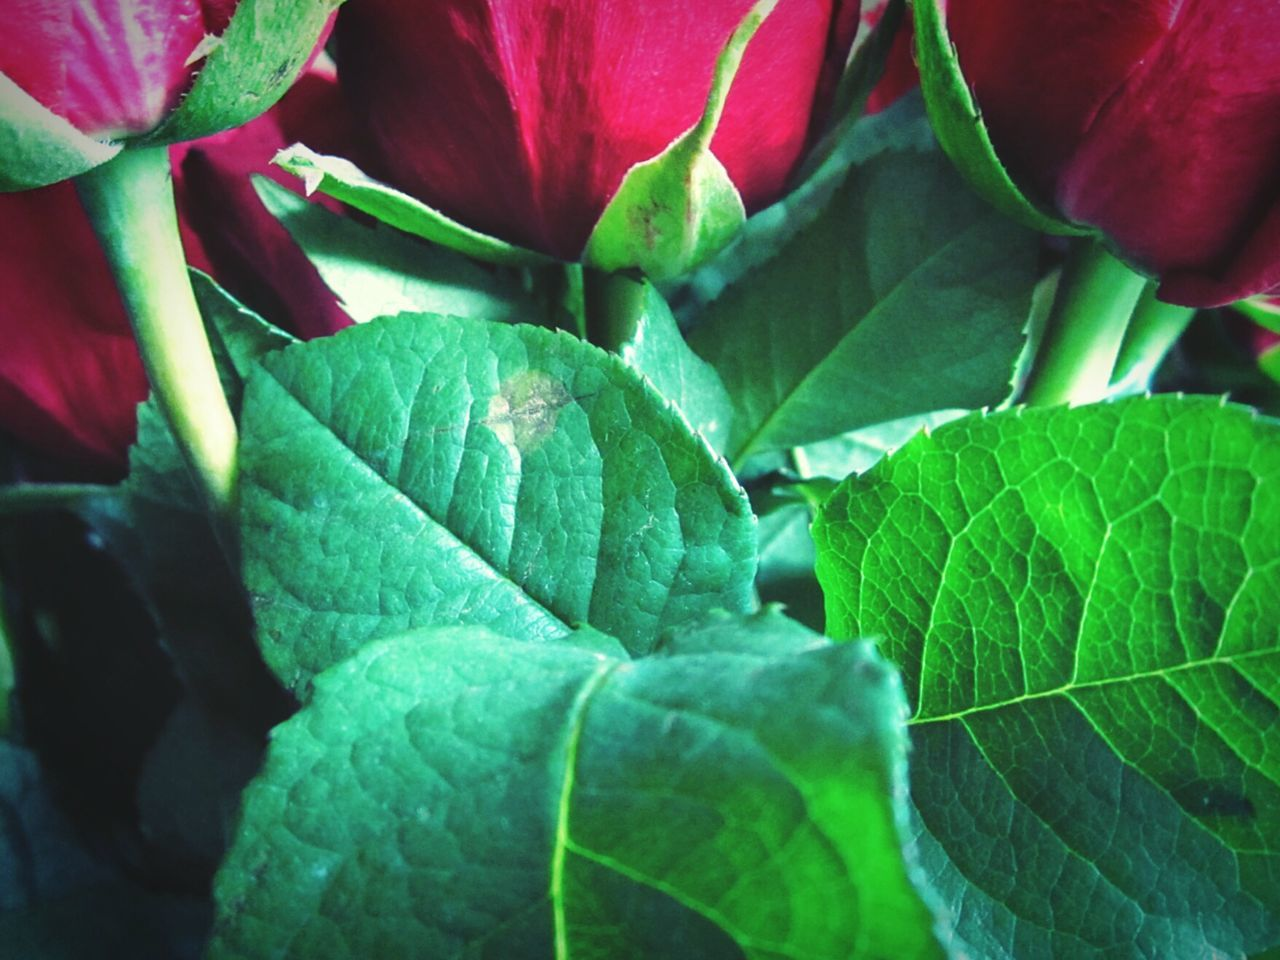 3 and 4 Nature Growth Flower Plant Leaf Red Beauty In Nature Fragility Freshness Green Color Full Frame Close-up Backgrounds Outdoors No People Flower Head Day Beauty In Nature Complexity Green Color Freshness Roses Red Roses Romance